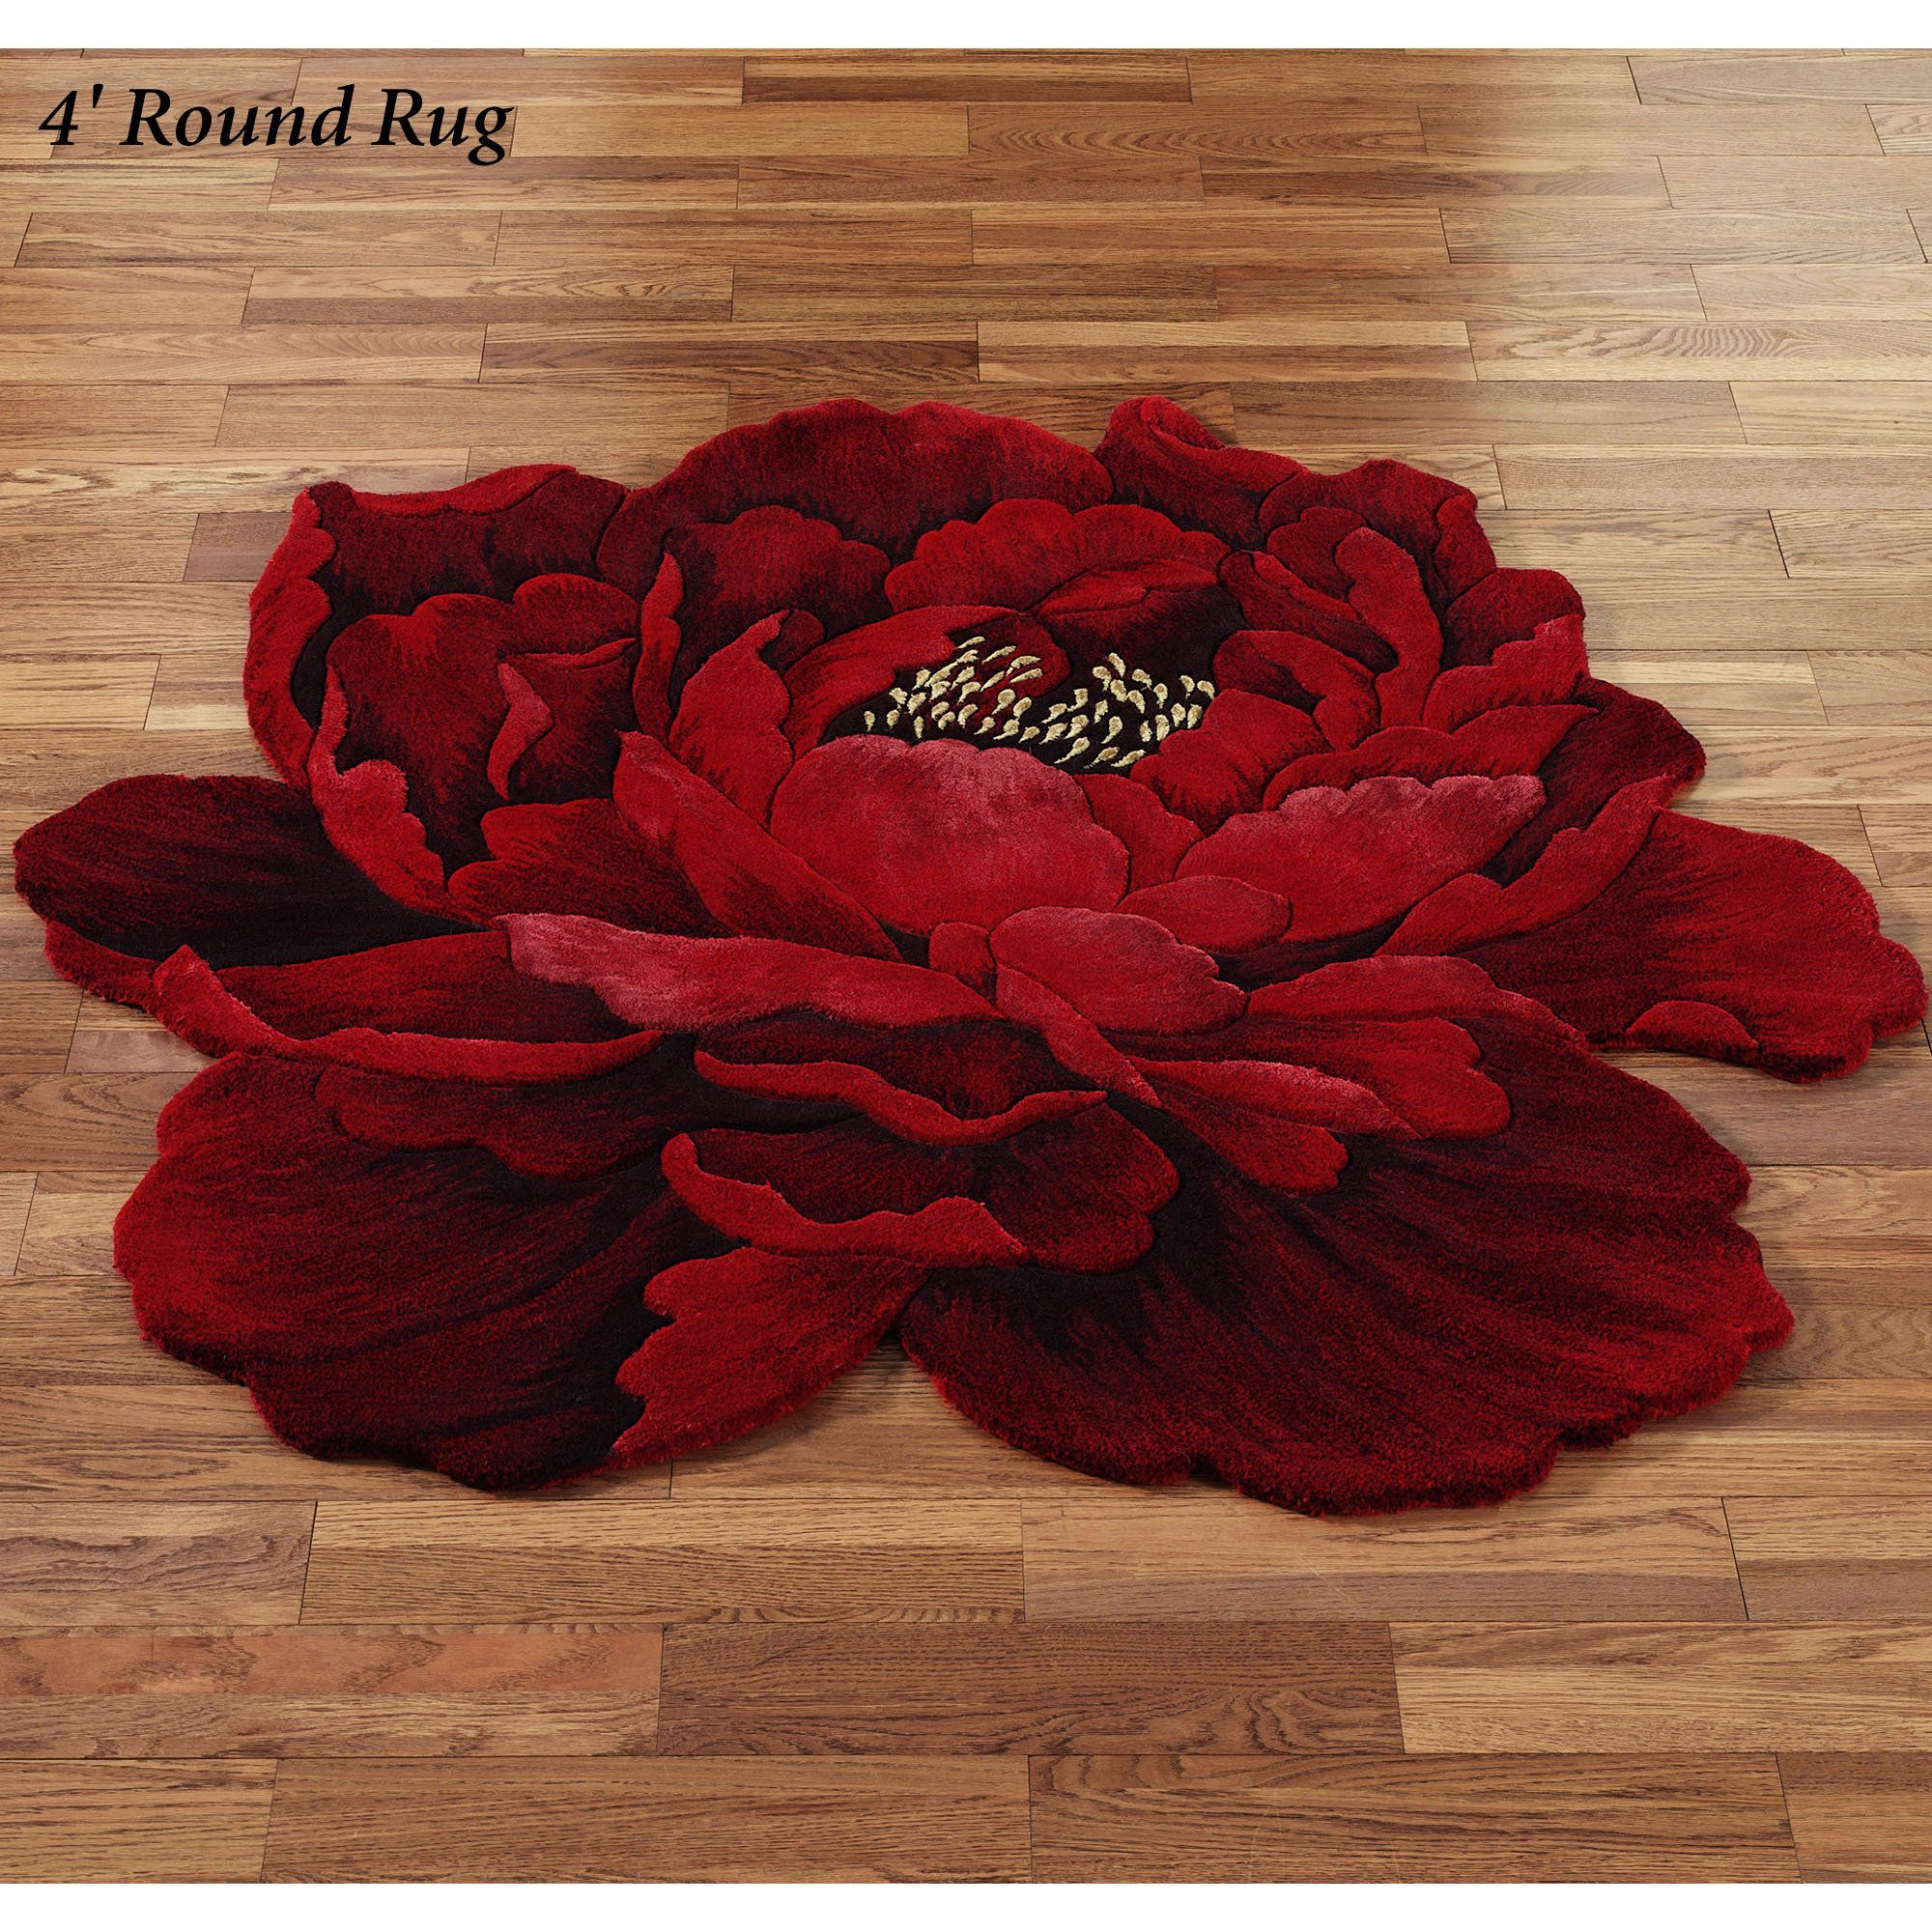 Wow So Interesting And A Conversation Piece Scarlet Magic Peony Flower Shaped Round Rugs